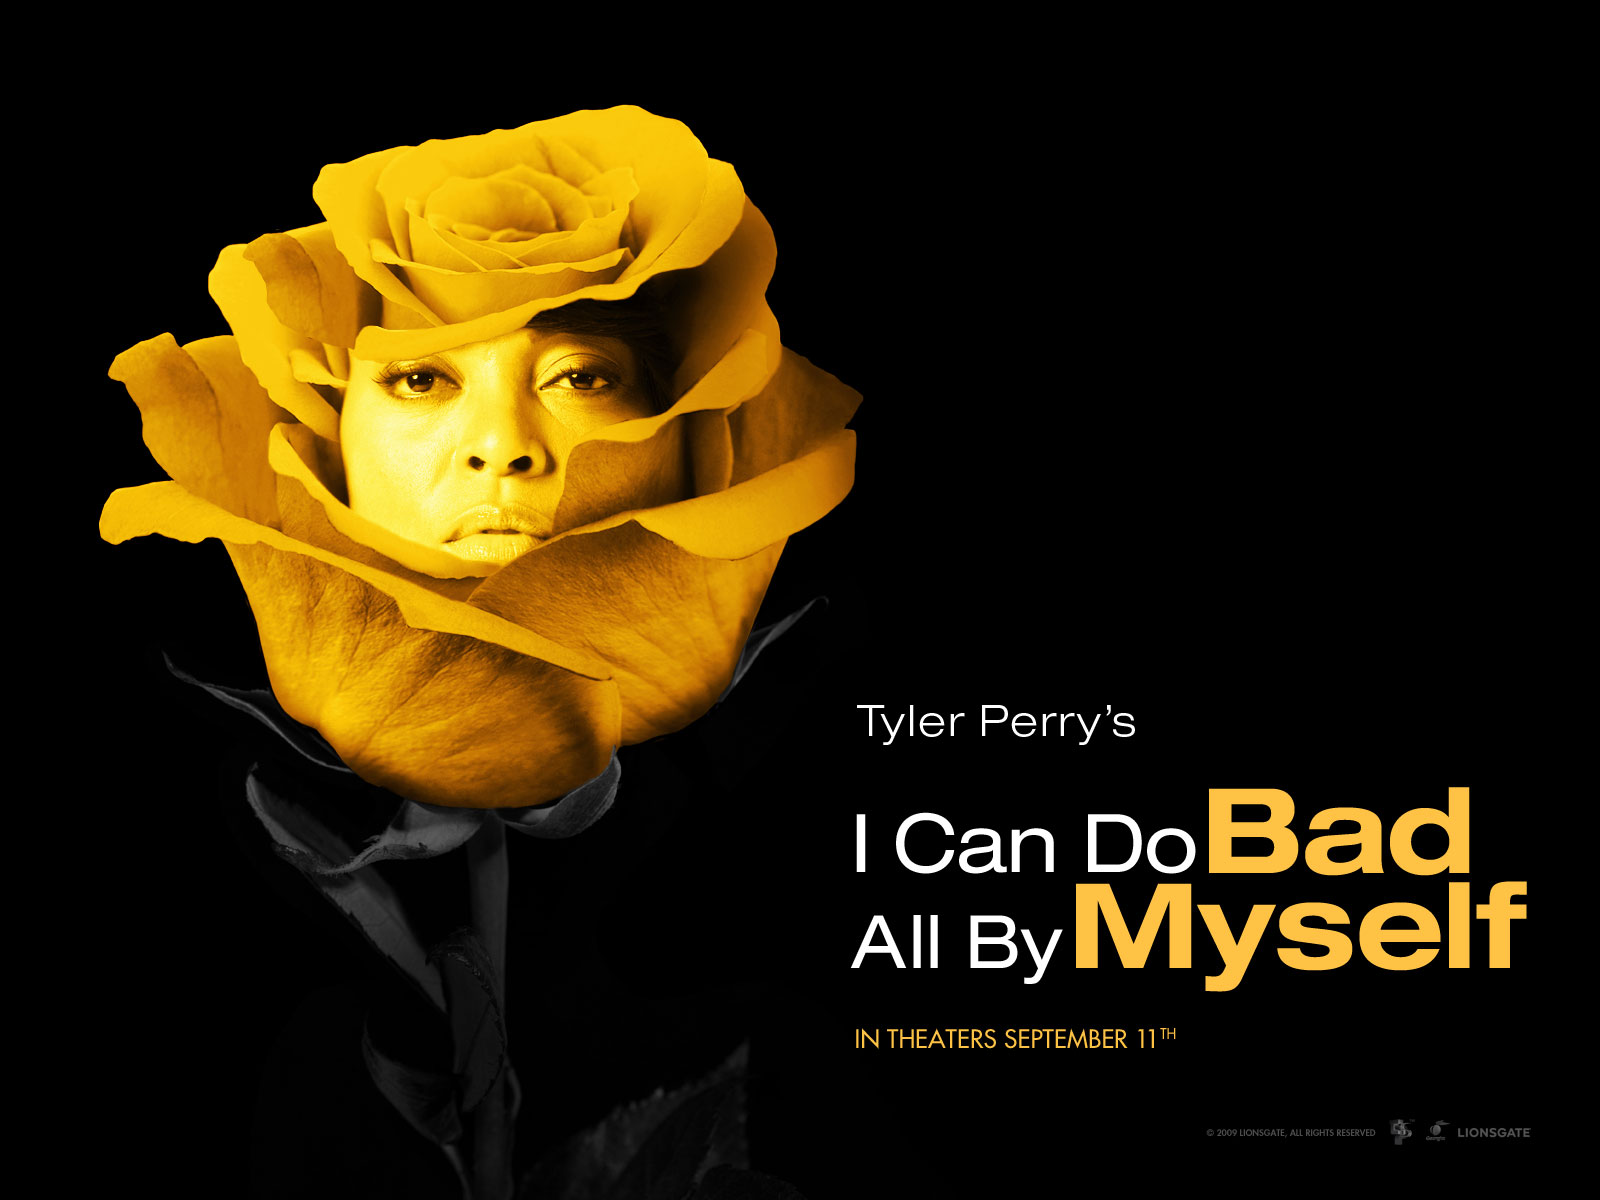 I My All Do Self Can Back